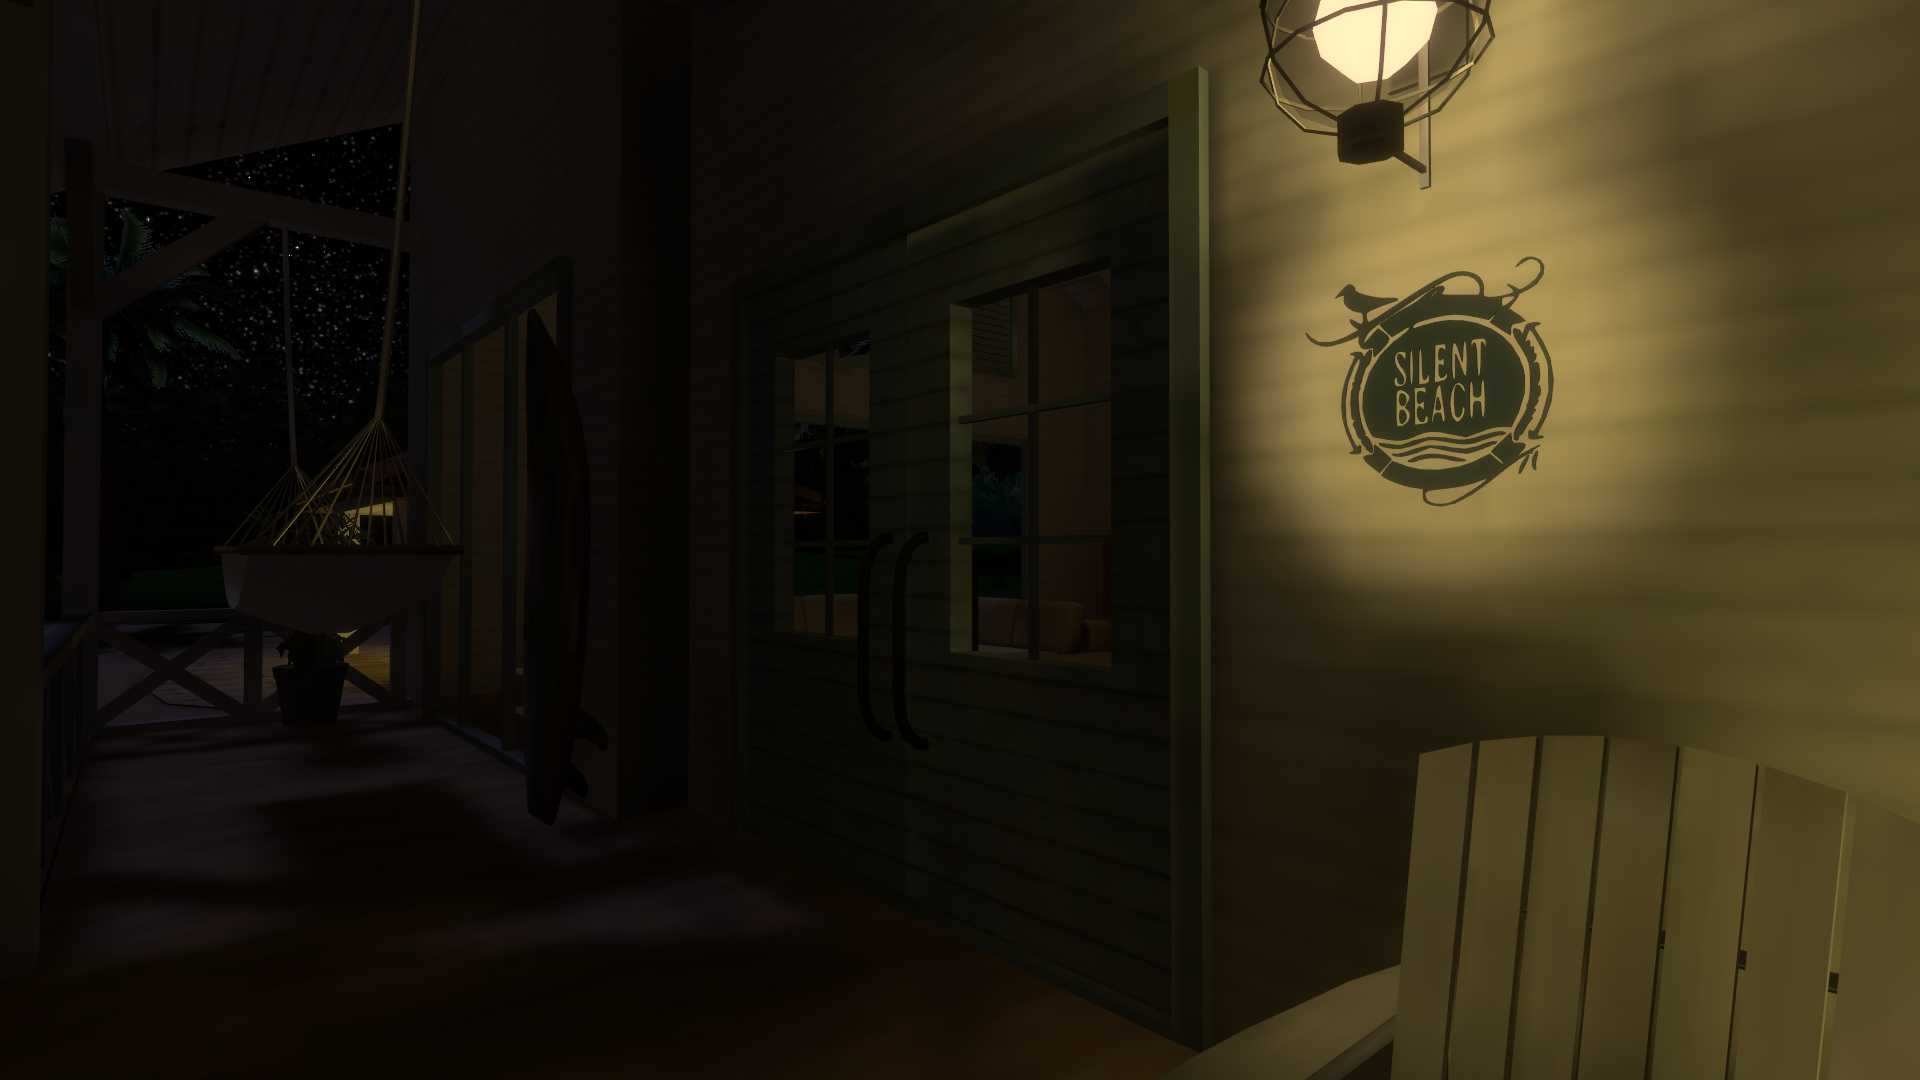 VRChat_1920x1080_2018-12-20_21-52-55.523.png